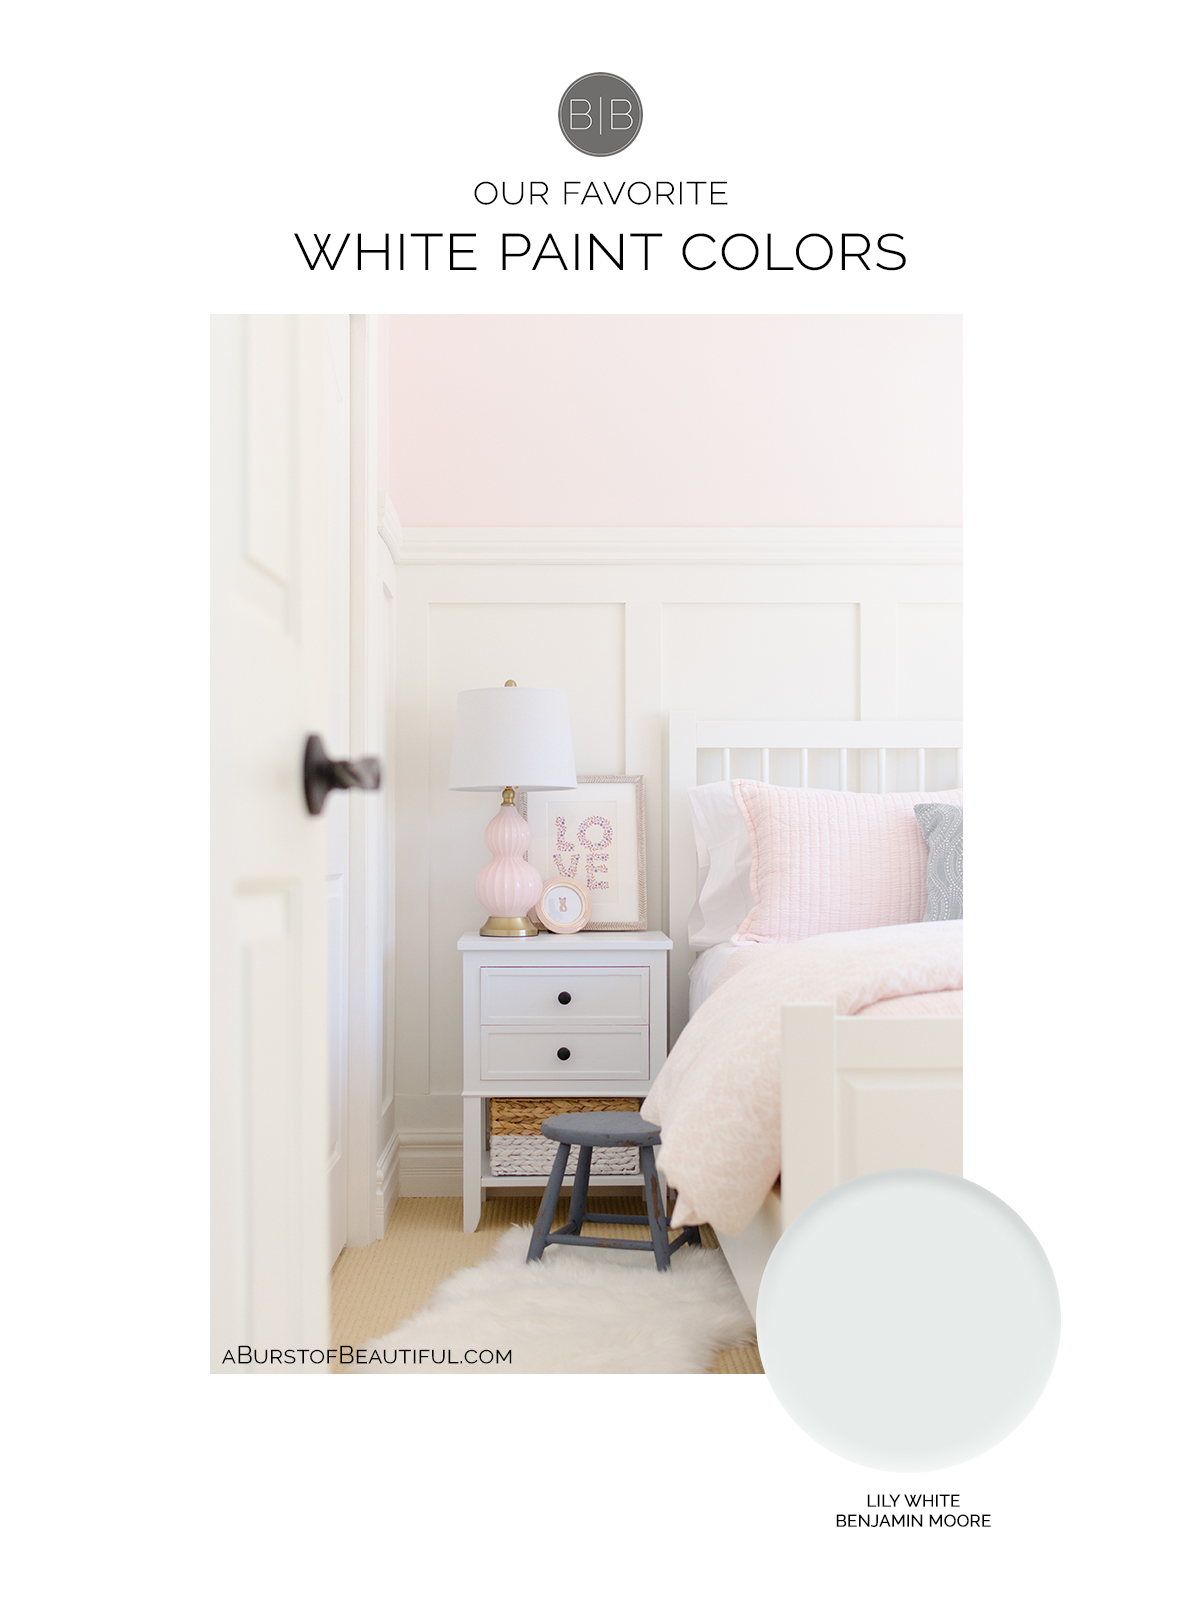 The Best White Paint Colors - Nick + Alicia